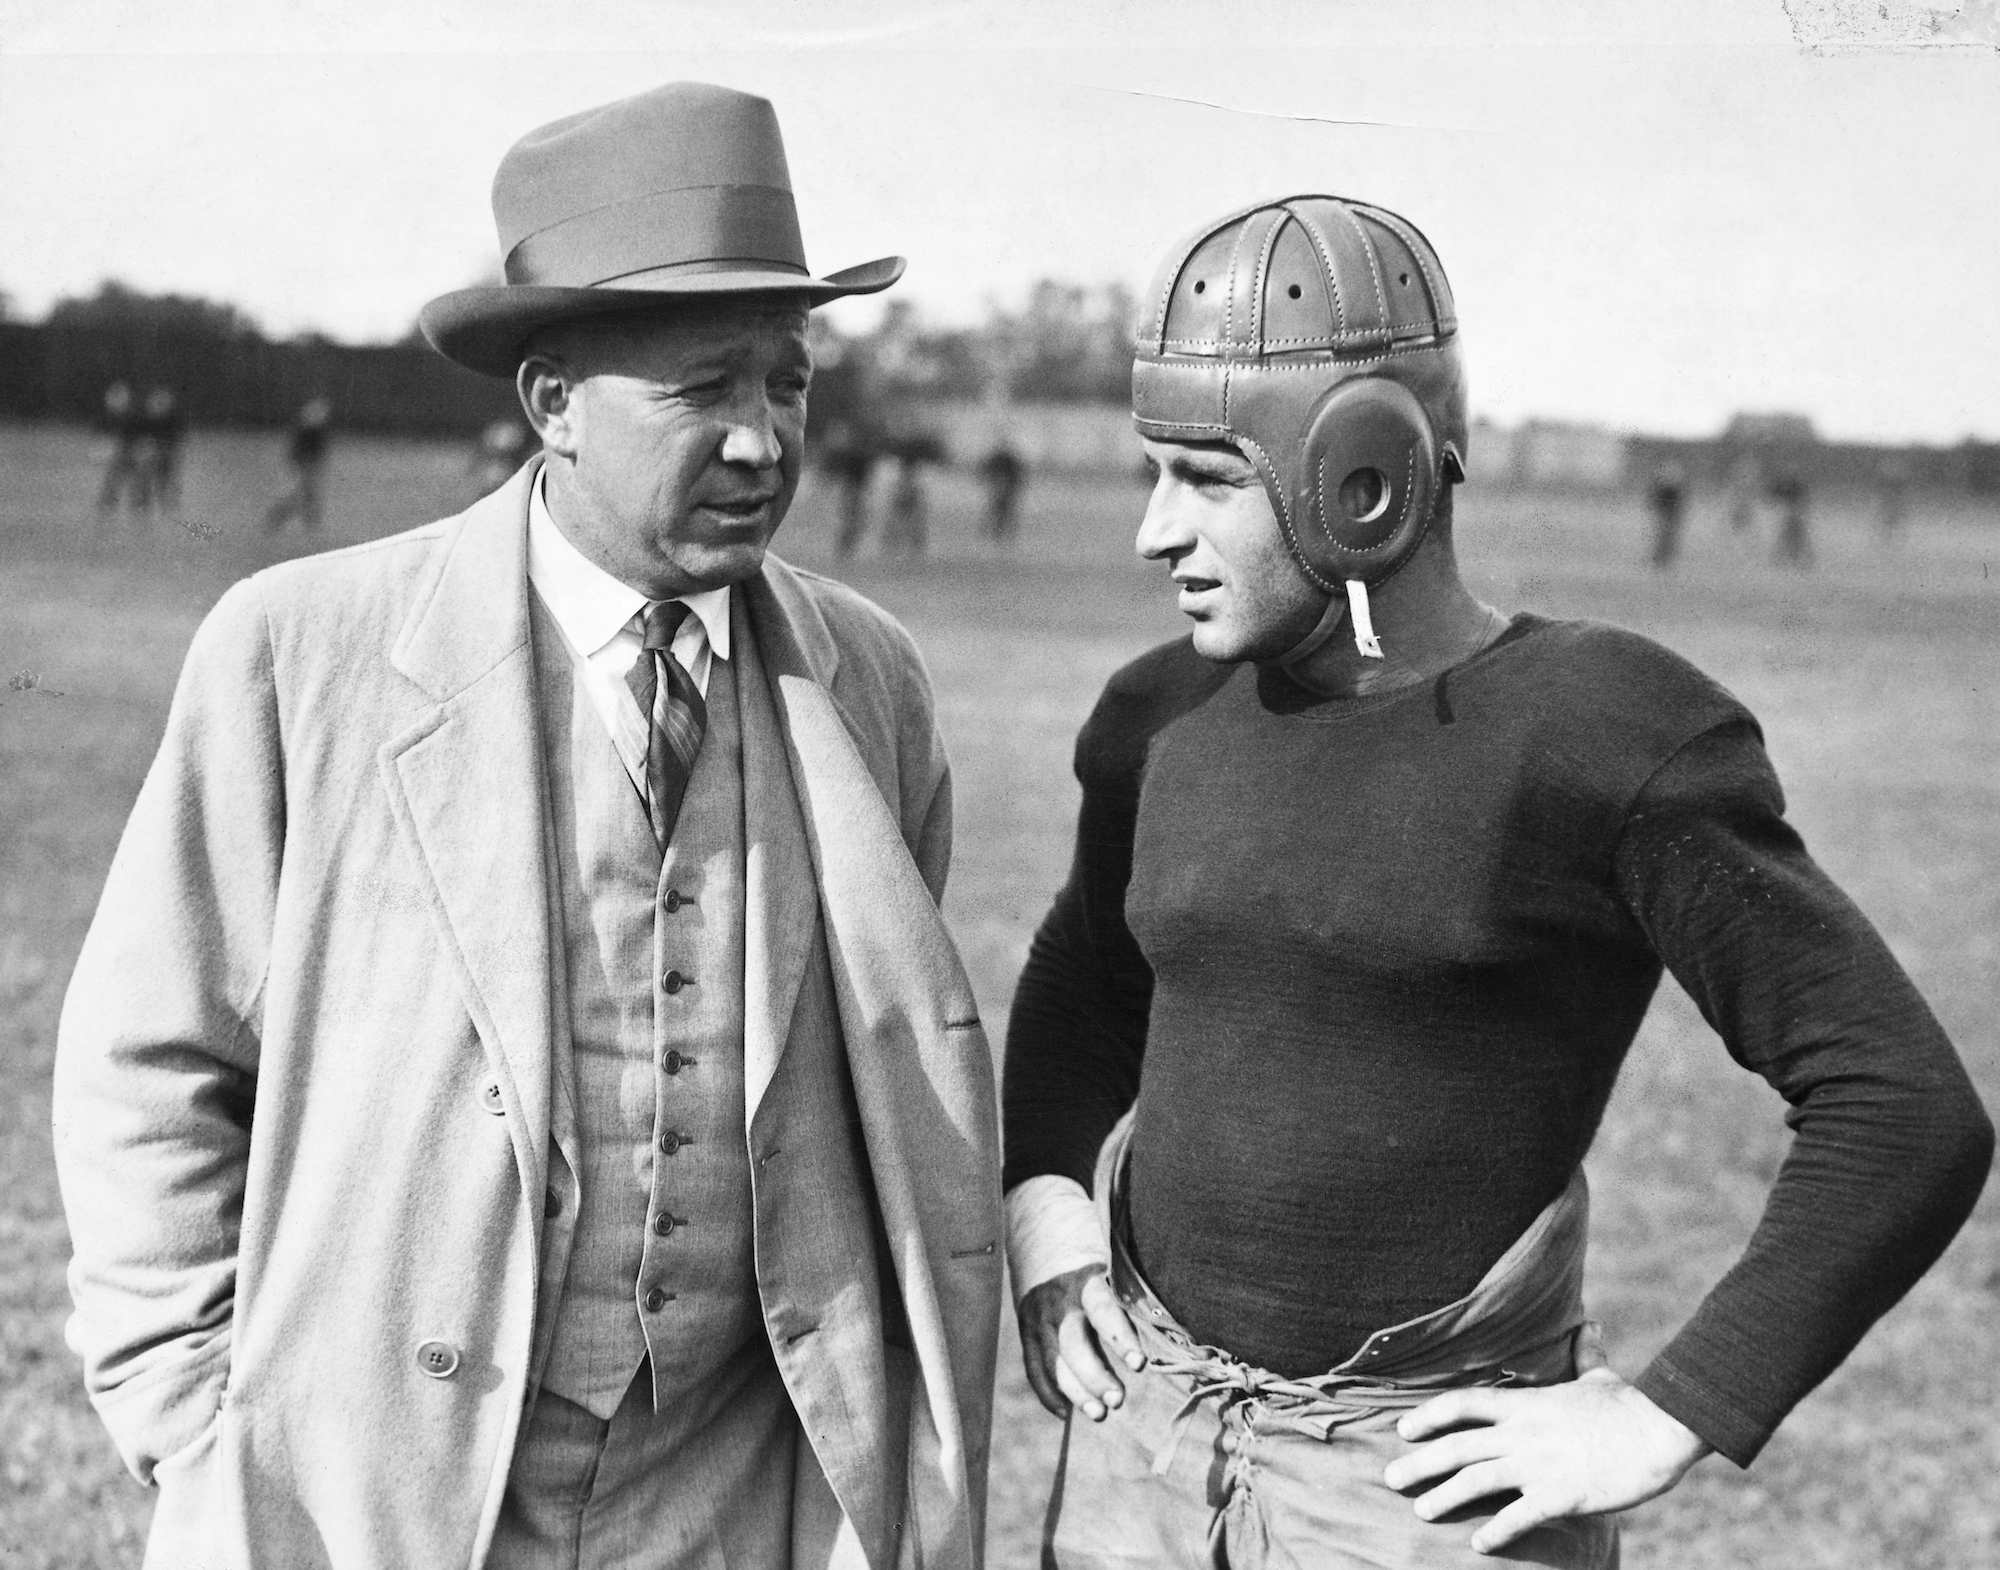 Notre Dame football coach Knute Rockne tragically died in a plane crash.